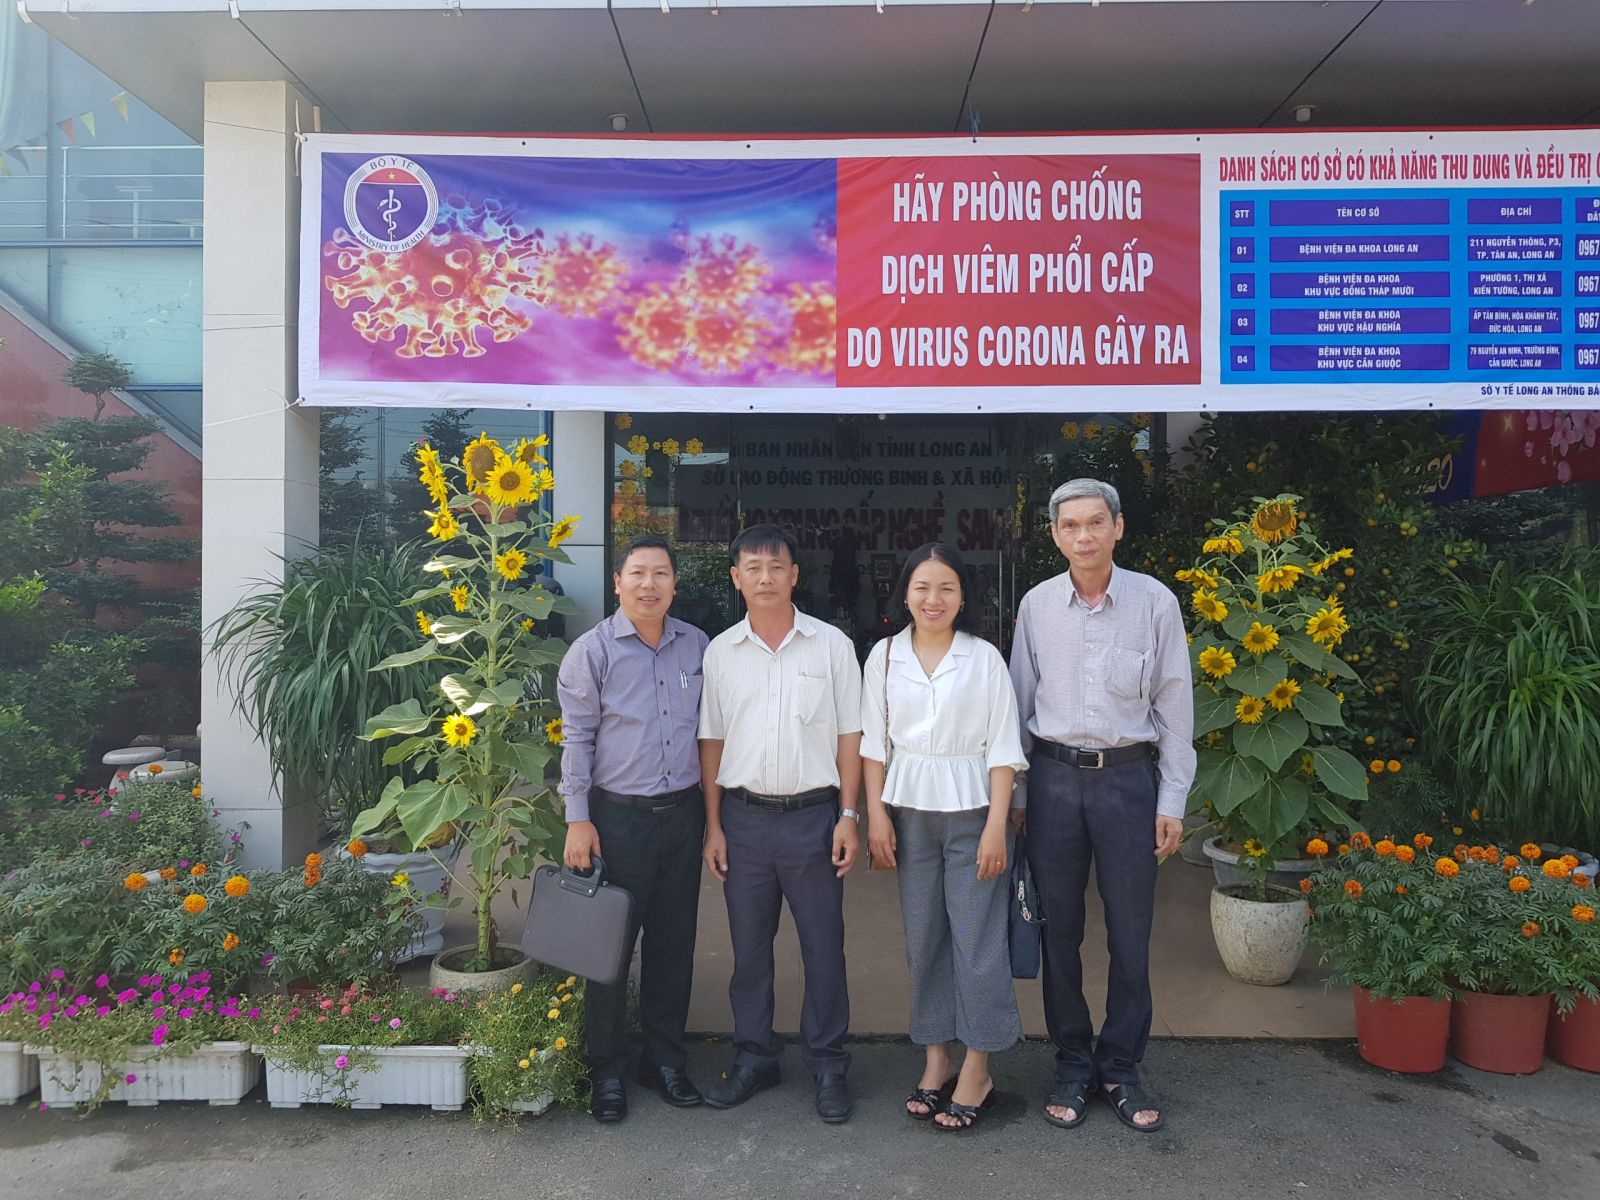 The mission come to work at private vocational education institutions